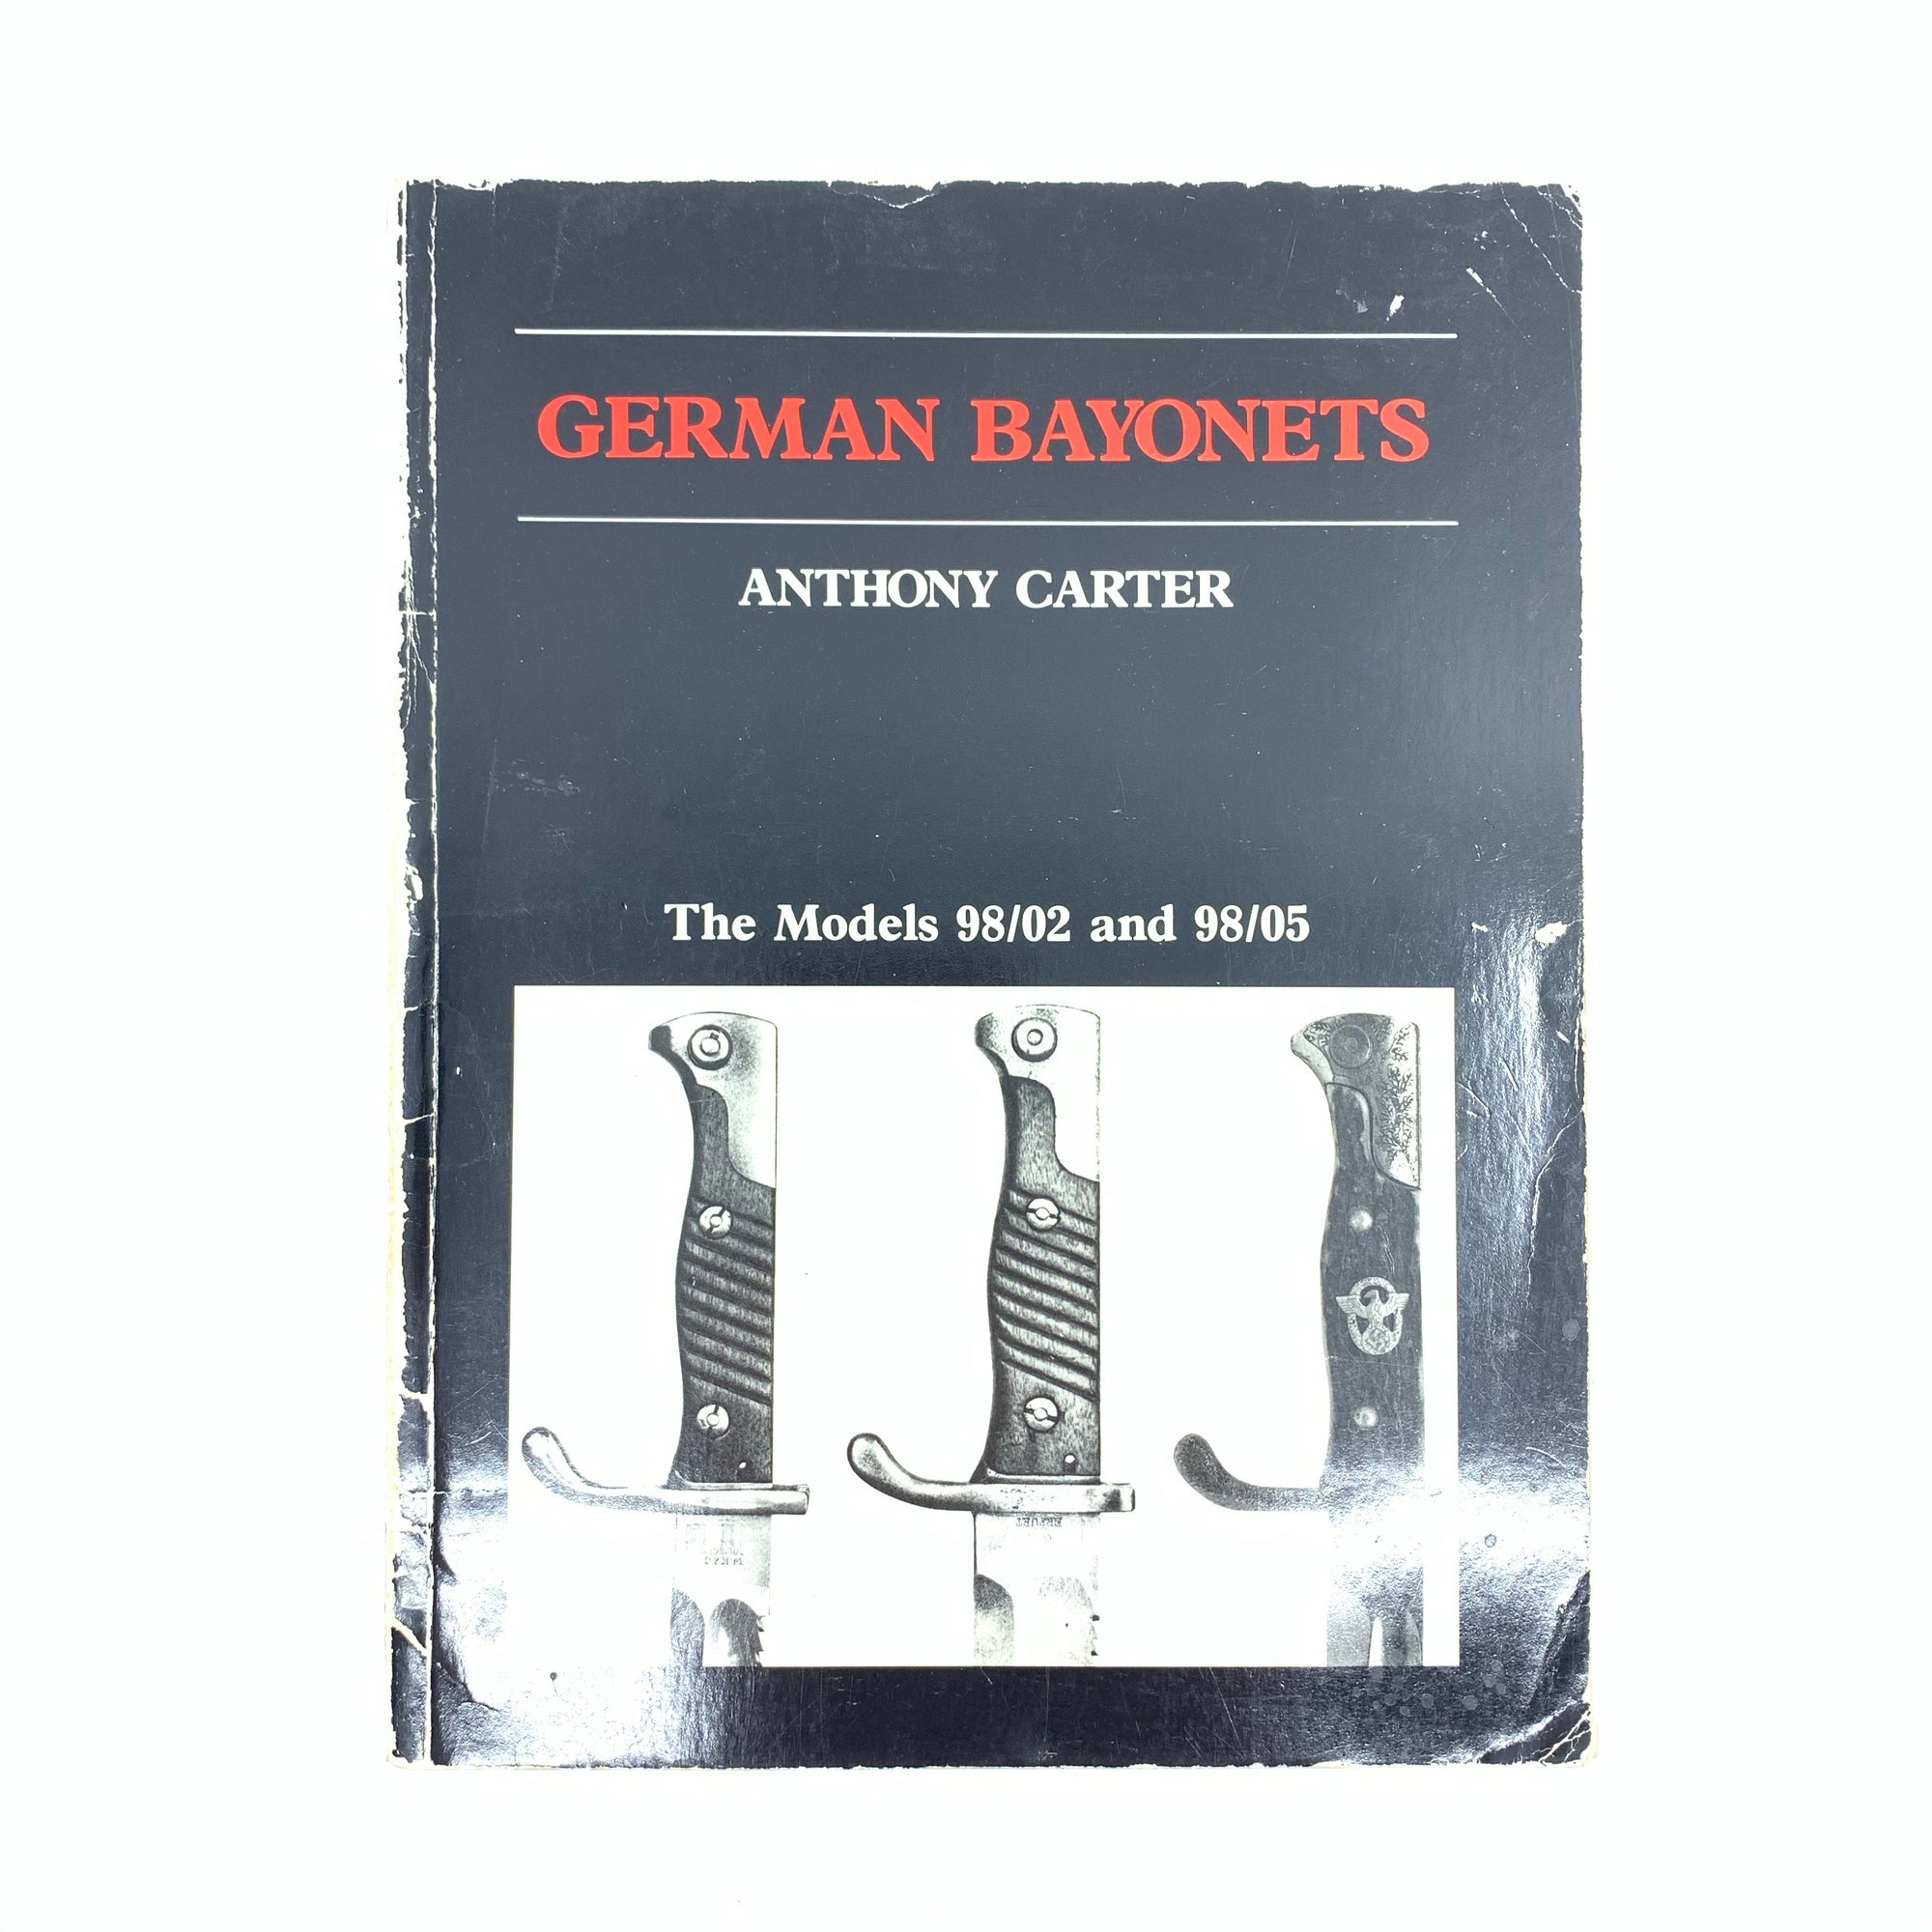 German Bayonets The Models 98/02 and 98/05 Anthony Carter SB 124 pgs